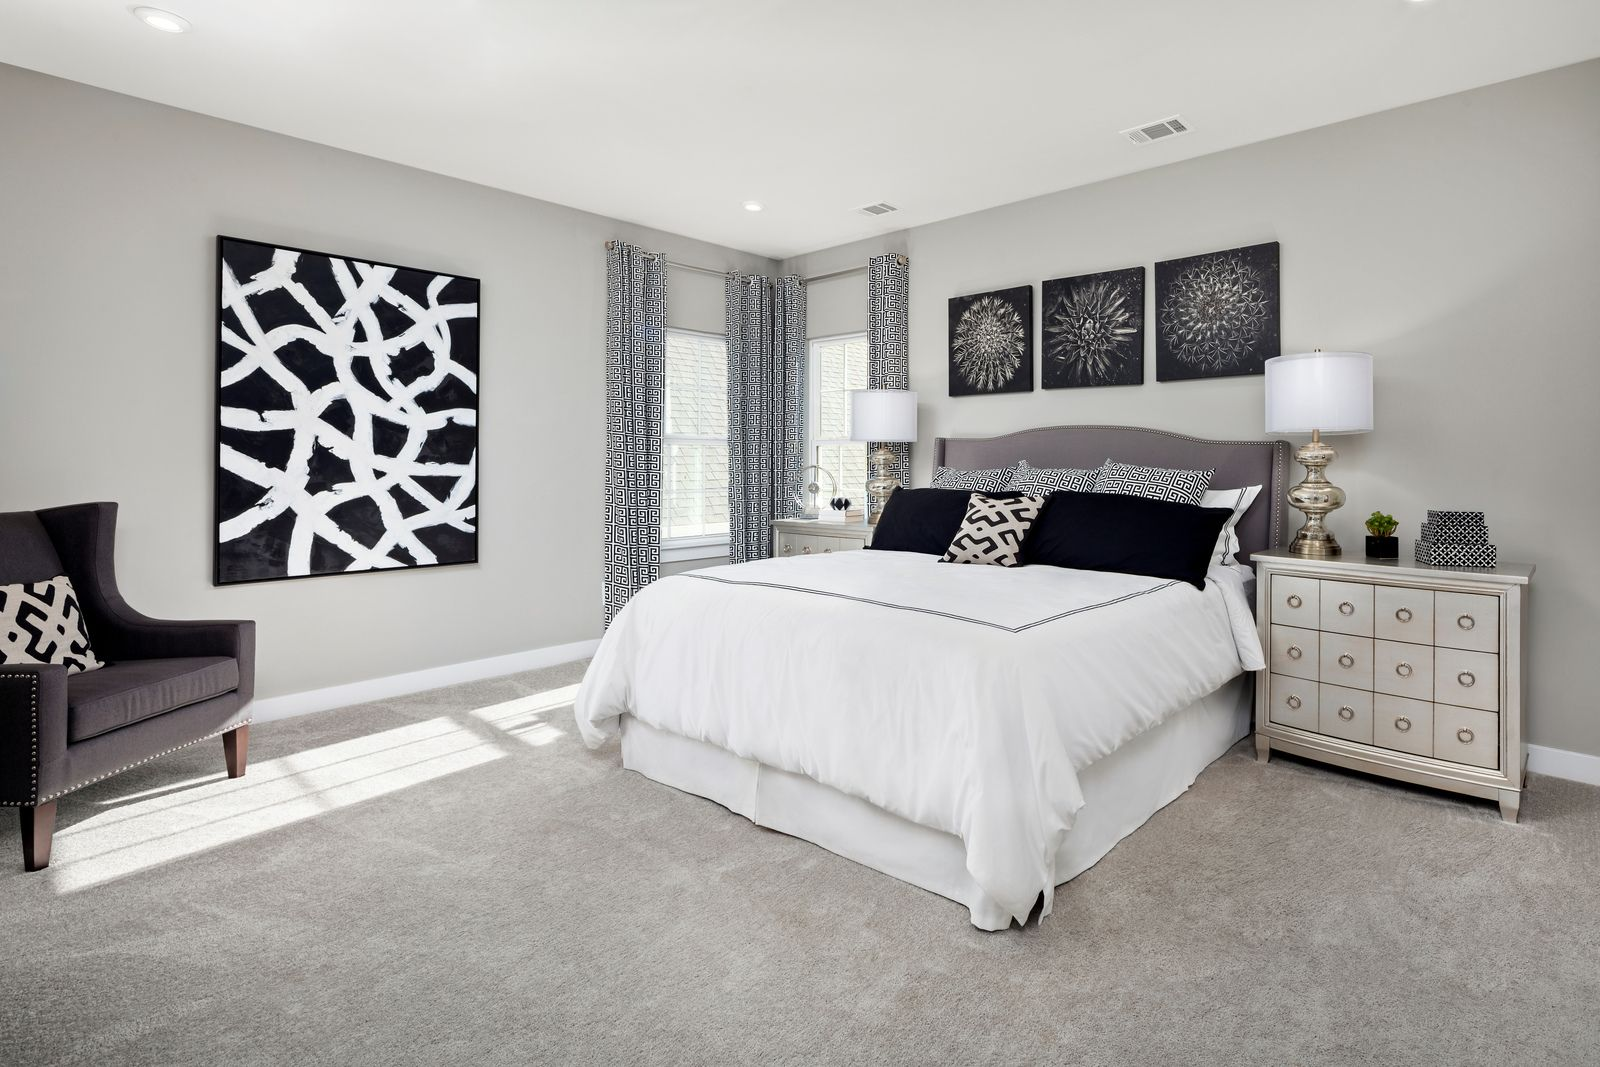 Bedroom featured in the Robert Frost By Ryan Homes in Charlottesville, VA